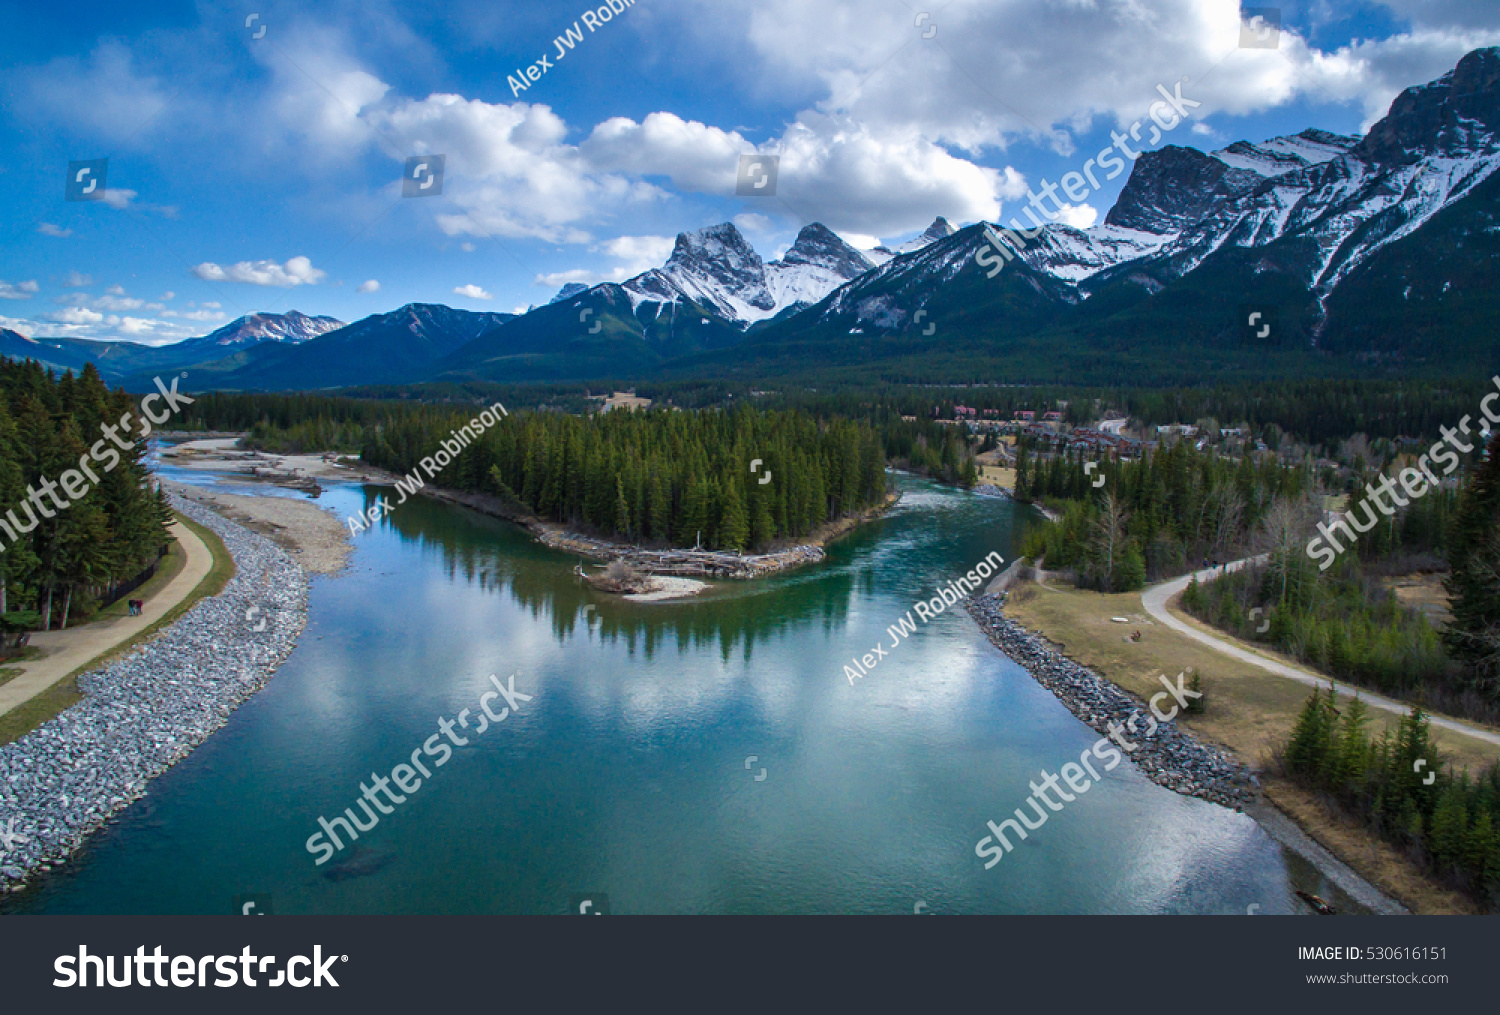 Canmore Ab Three Sisters Stock Photo (Edit Now) 530616151